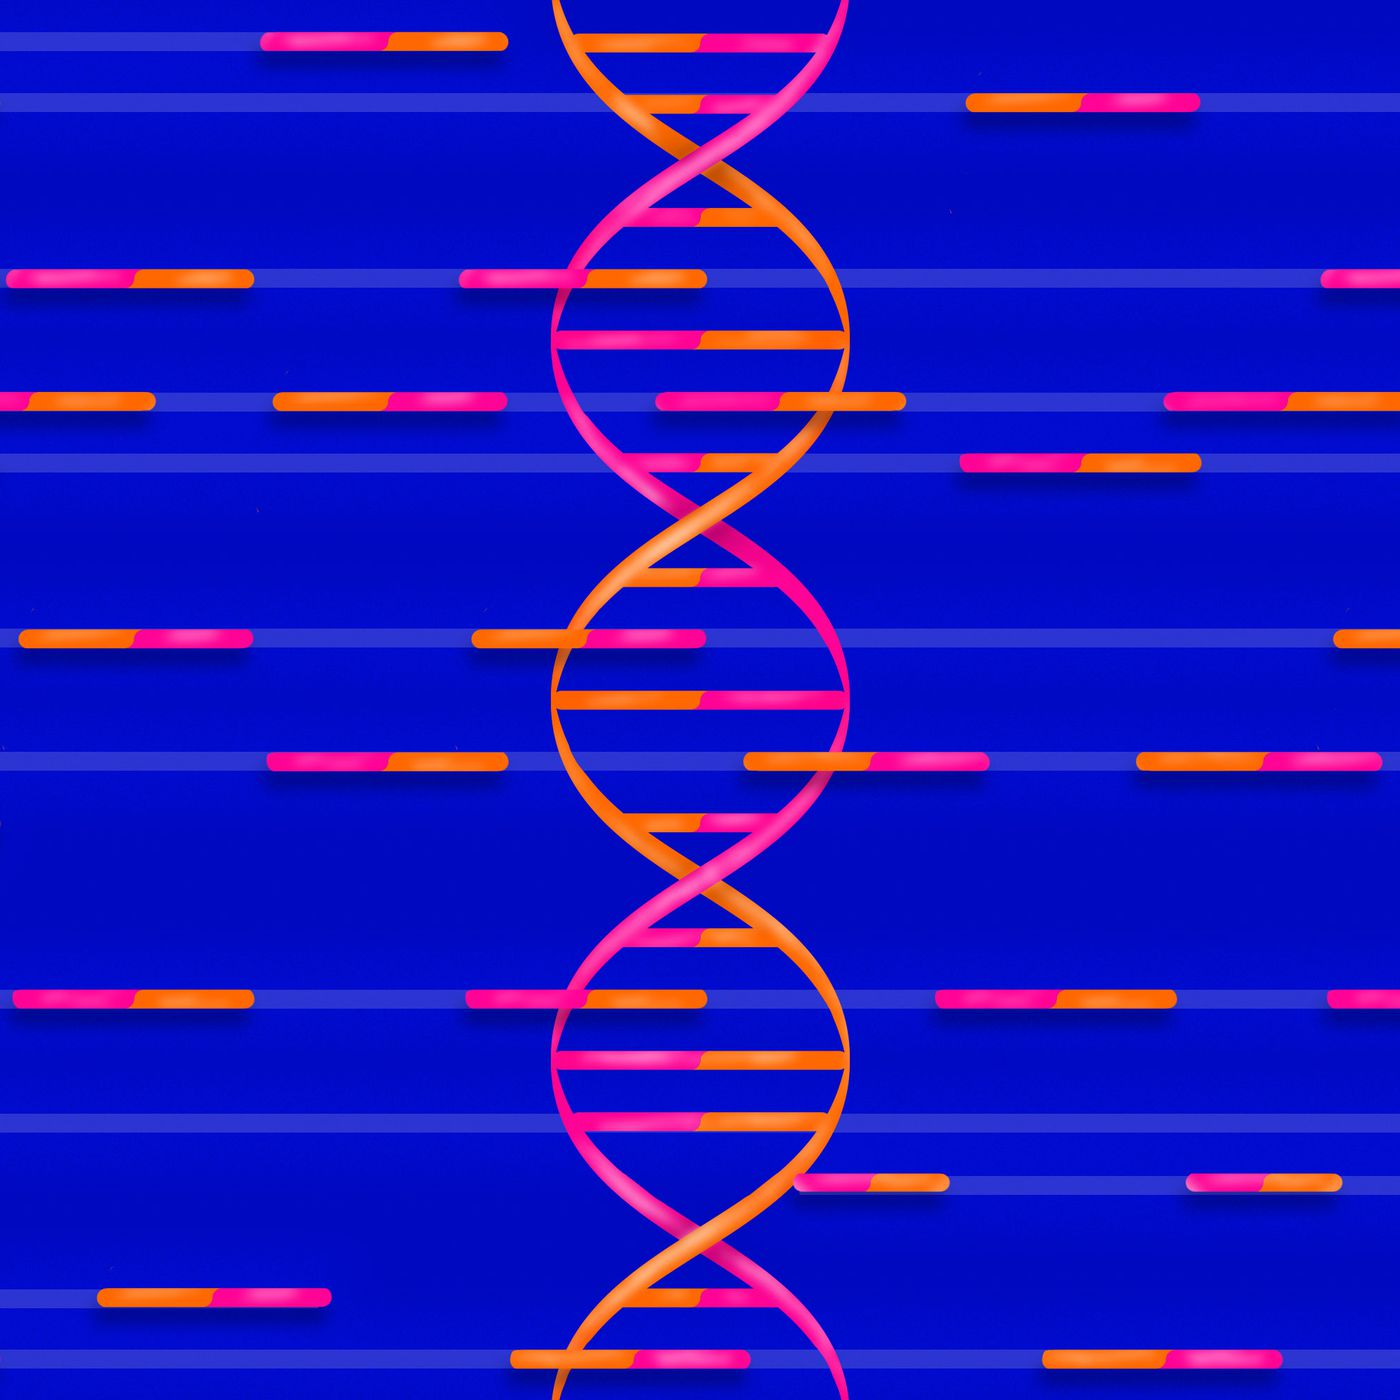 Why a DNA data breach is much worse than a credit card leak - The Verge